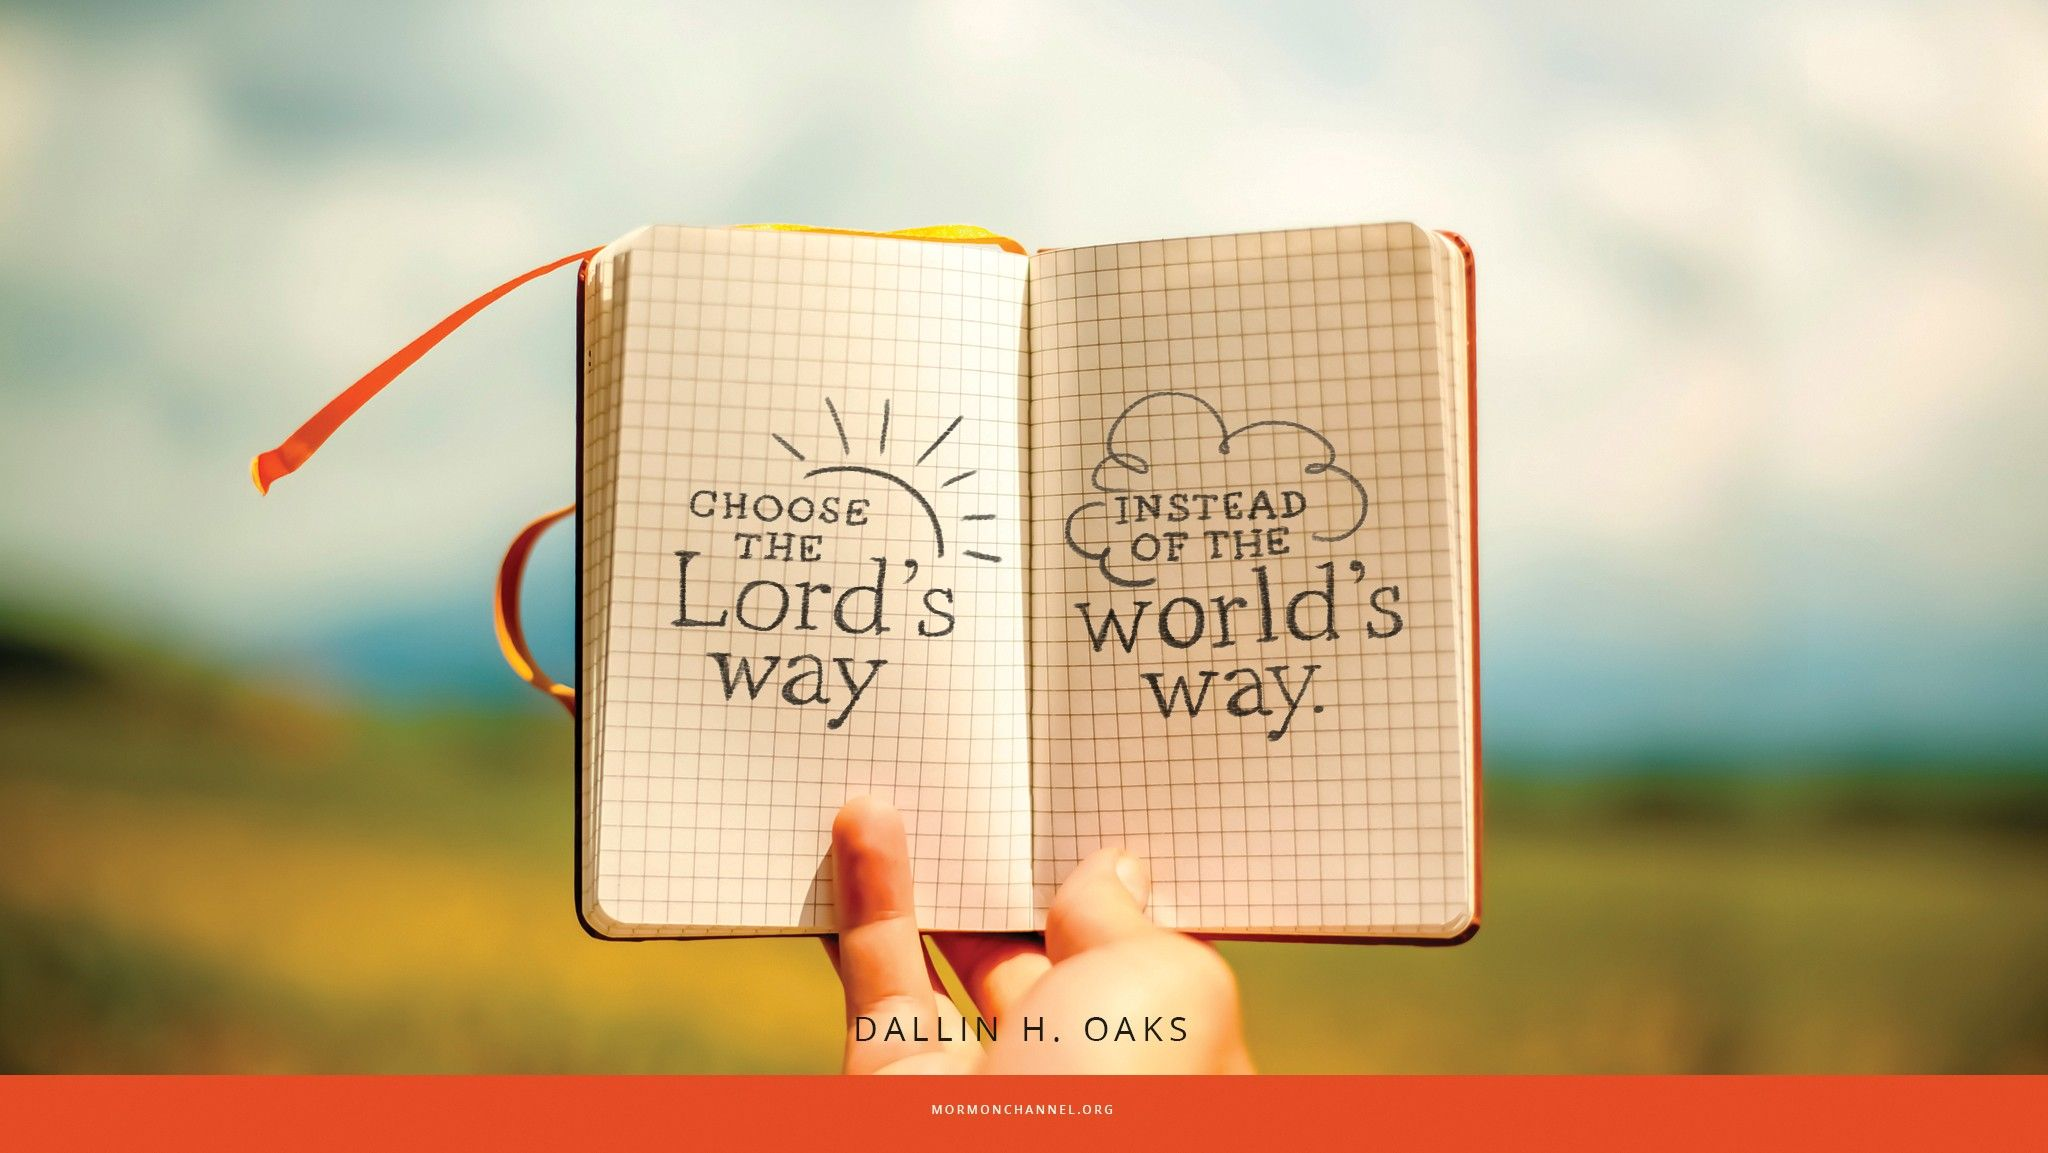 """""""Choose the Lord's way instead of the world's way.""""—Elder Dallin H. Oaks, """"The Plan and the Proclamation"""" © undefined ipCode 1."""